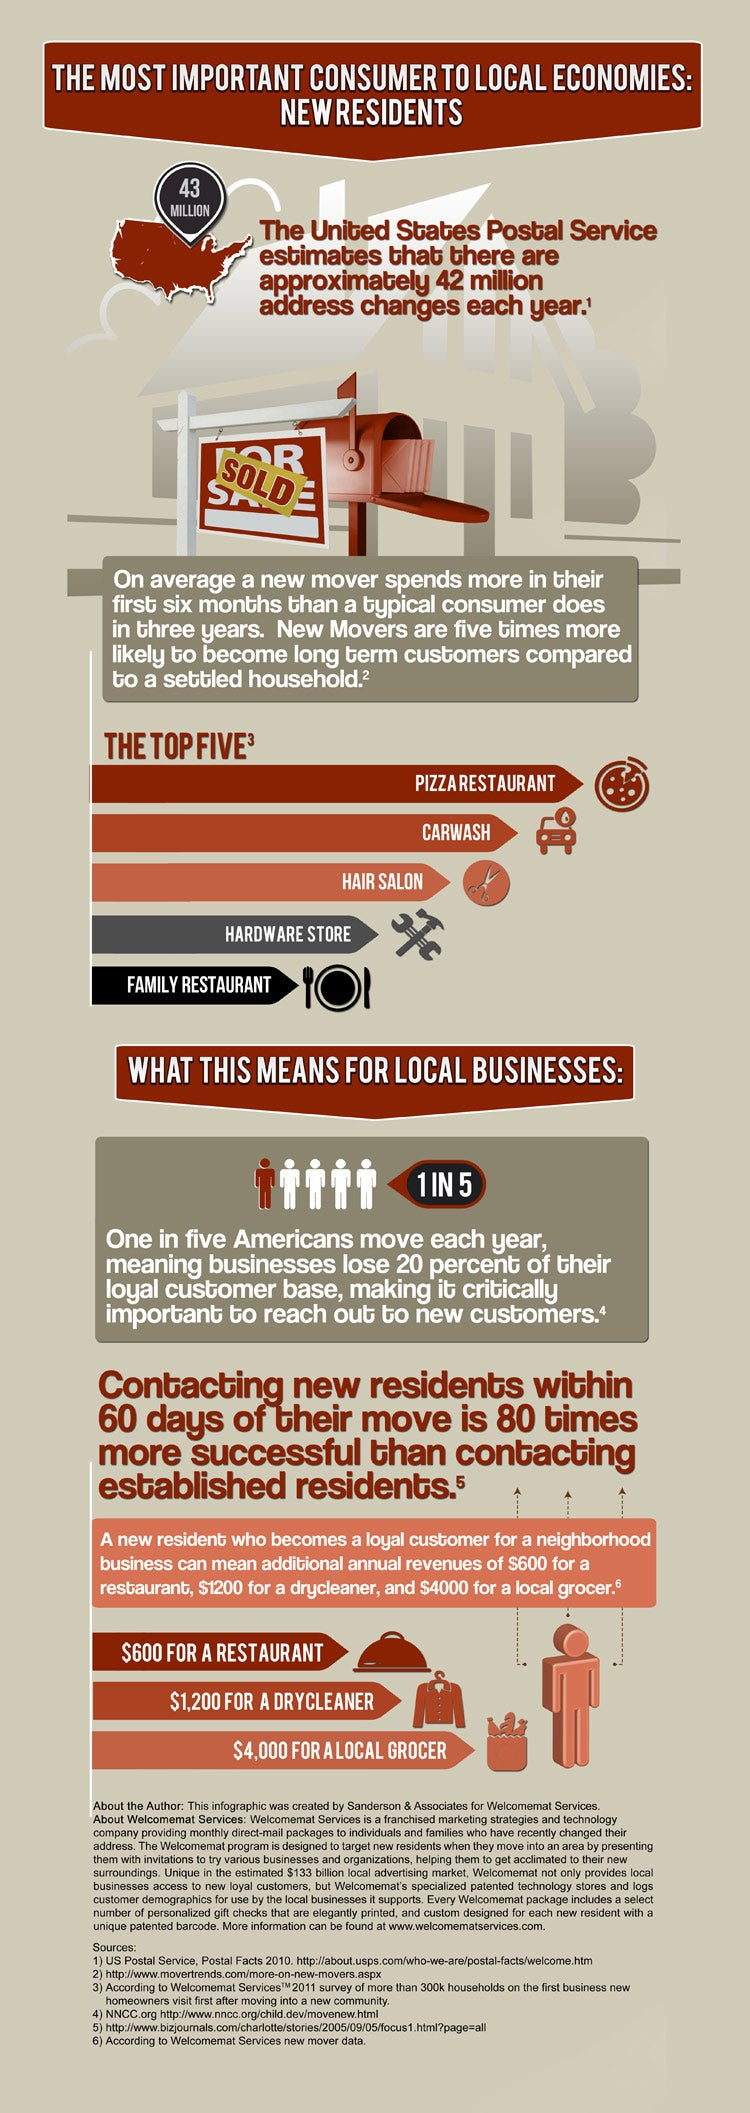 The Most Important Consumer to Local Economies: New Residents